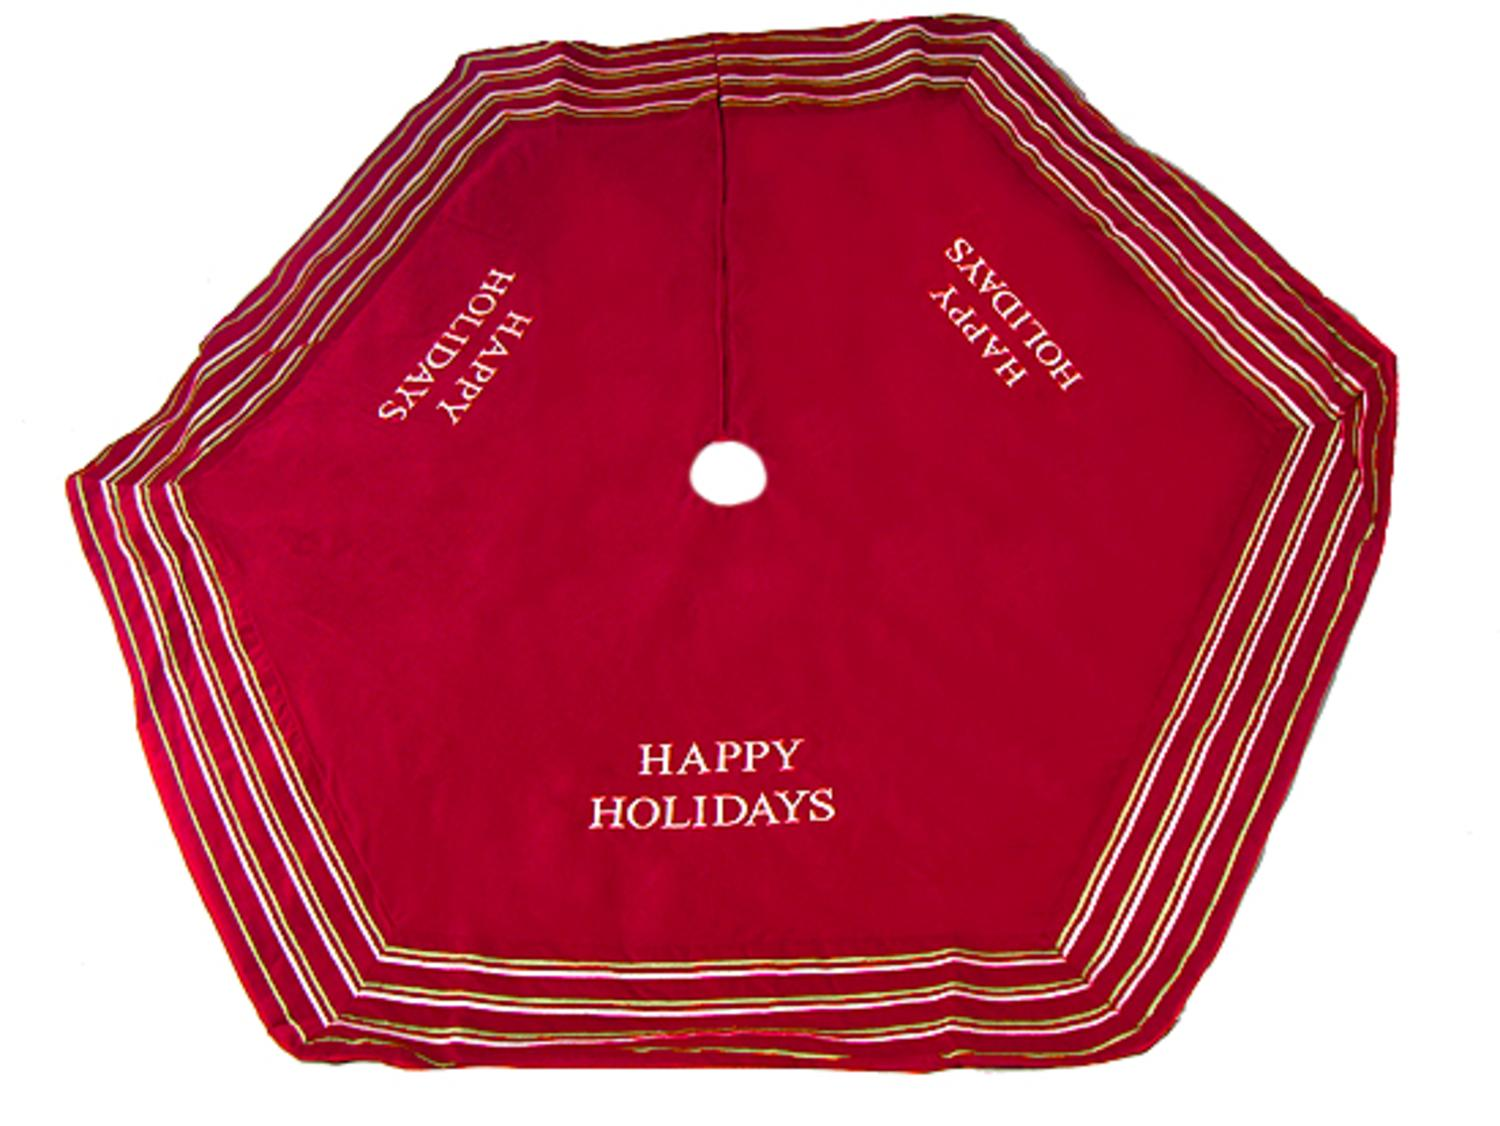 ''56'''' Red ''''Happy HOLIDAYs'''' Christmas Tree Skirt with Striped Trim''